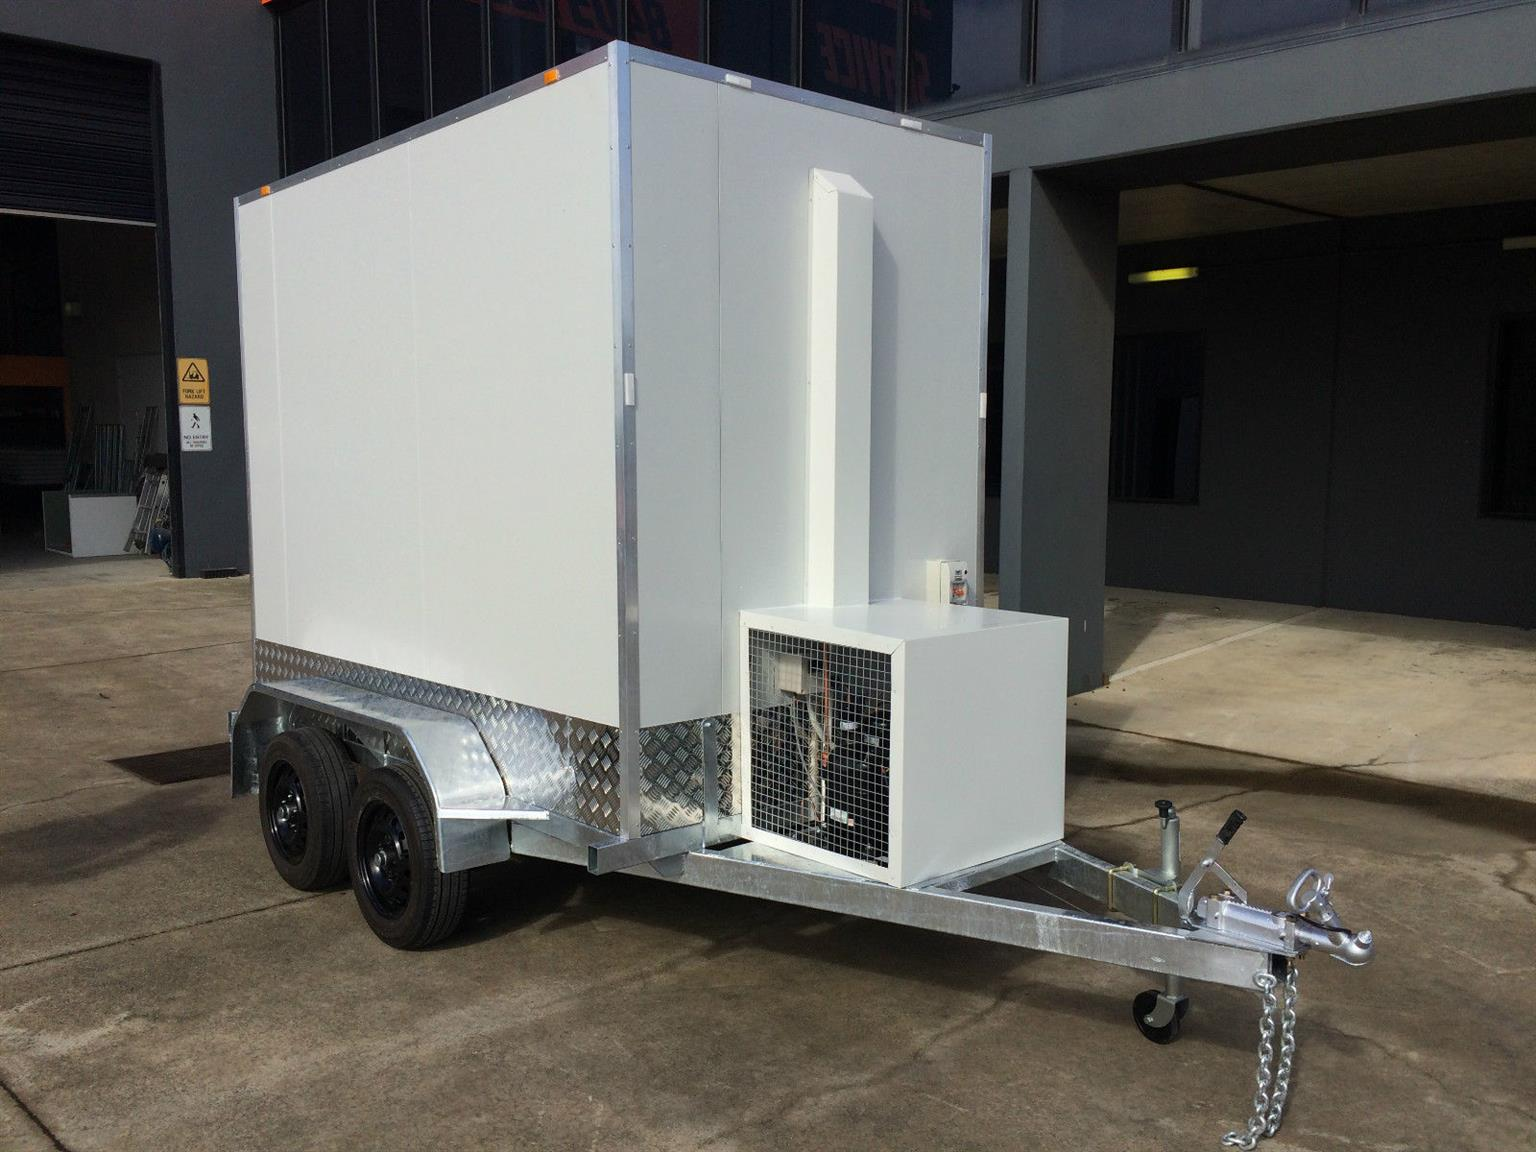 Newly built refrigerated trailers/mobile cold rooms for sale.